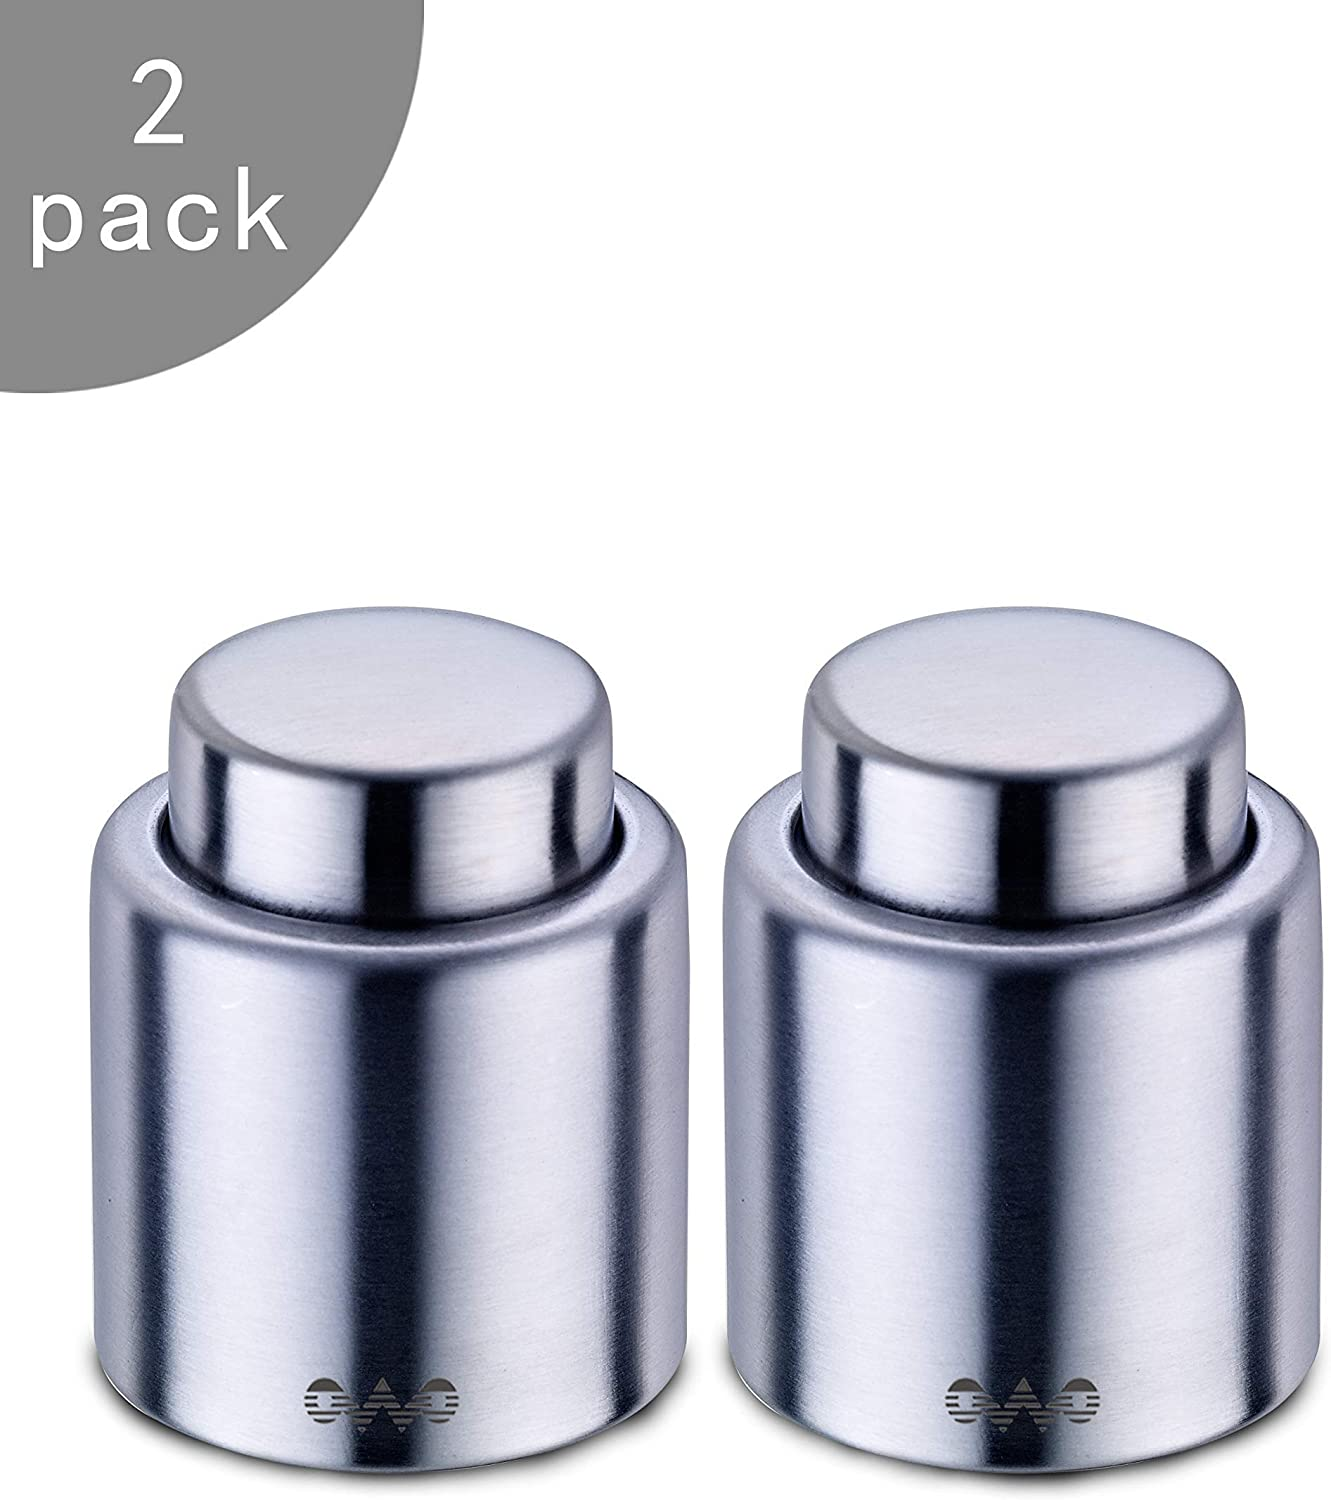 OWO Wine Stopper with Stainless Steel, Decorative Wine Saver Vacuum Plug with Food Grade Silicone, Reusable Bottle Sealer Keeps Wine Fresh, Best Labor Day Gift (2pack set)